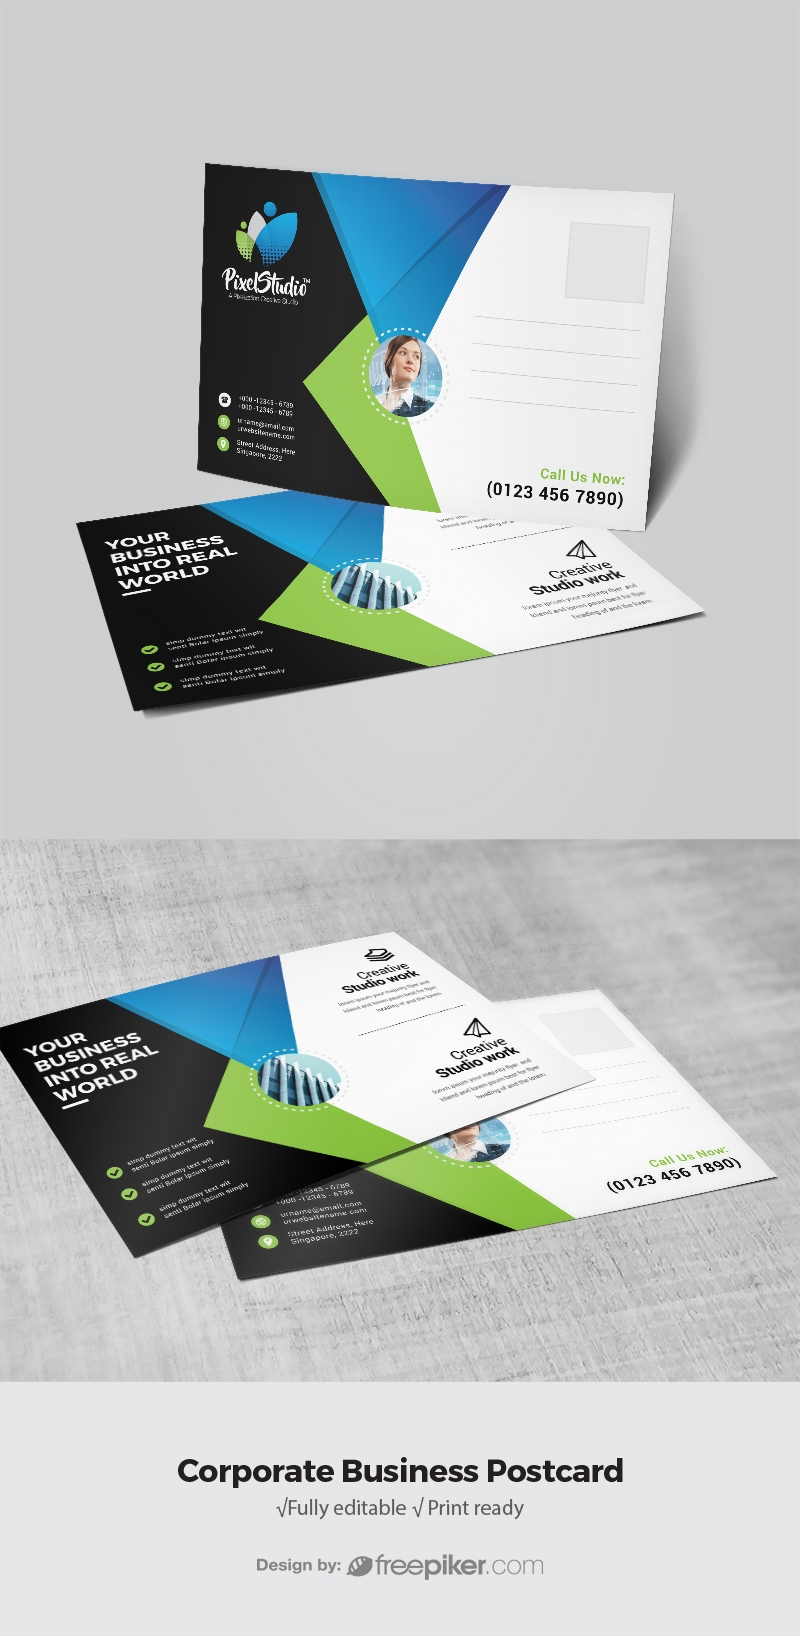 Business Post Card With Blue & Green Accent